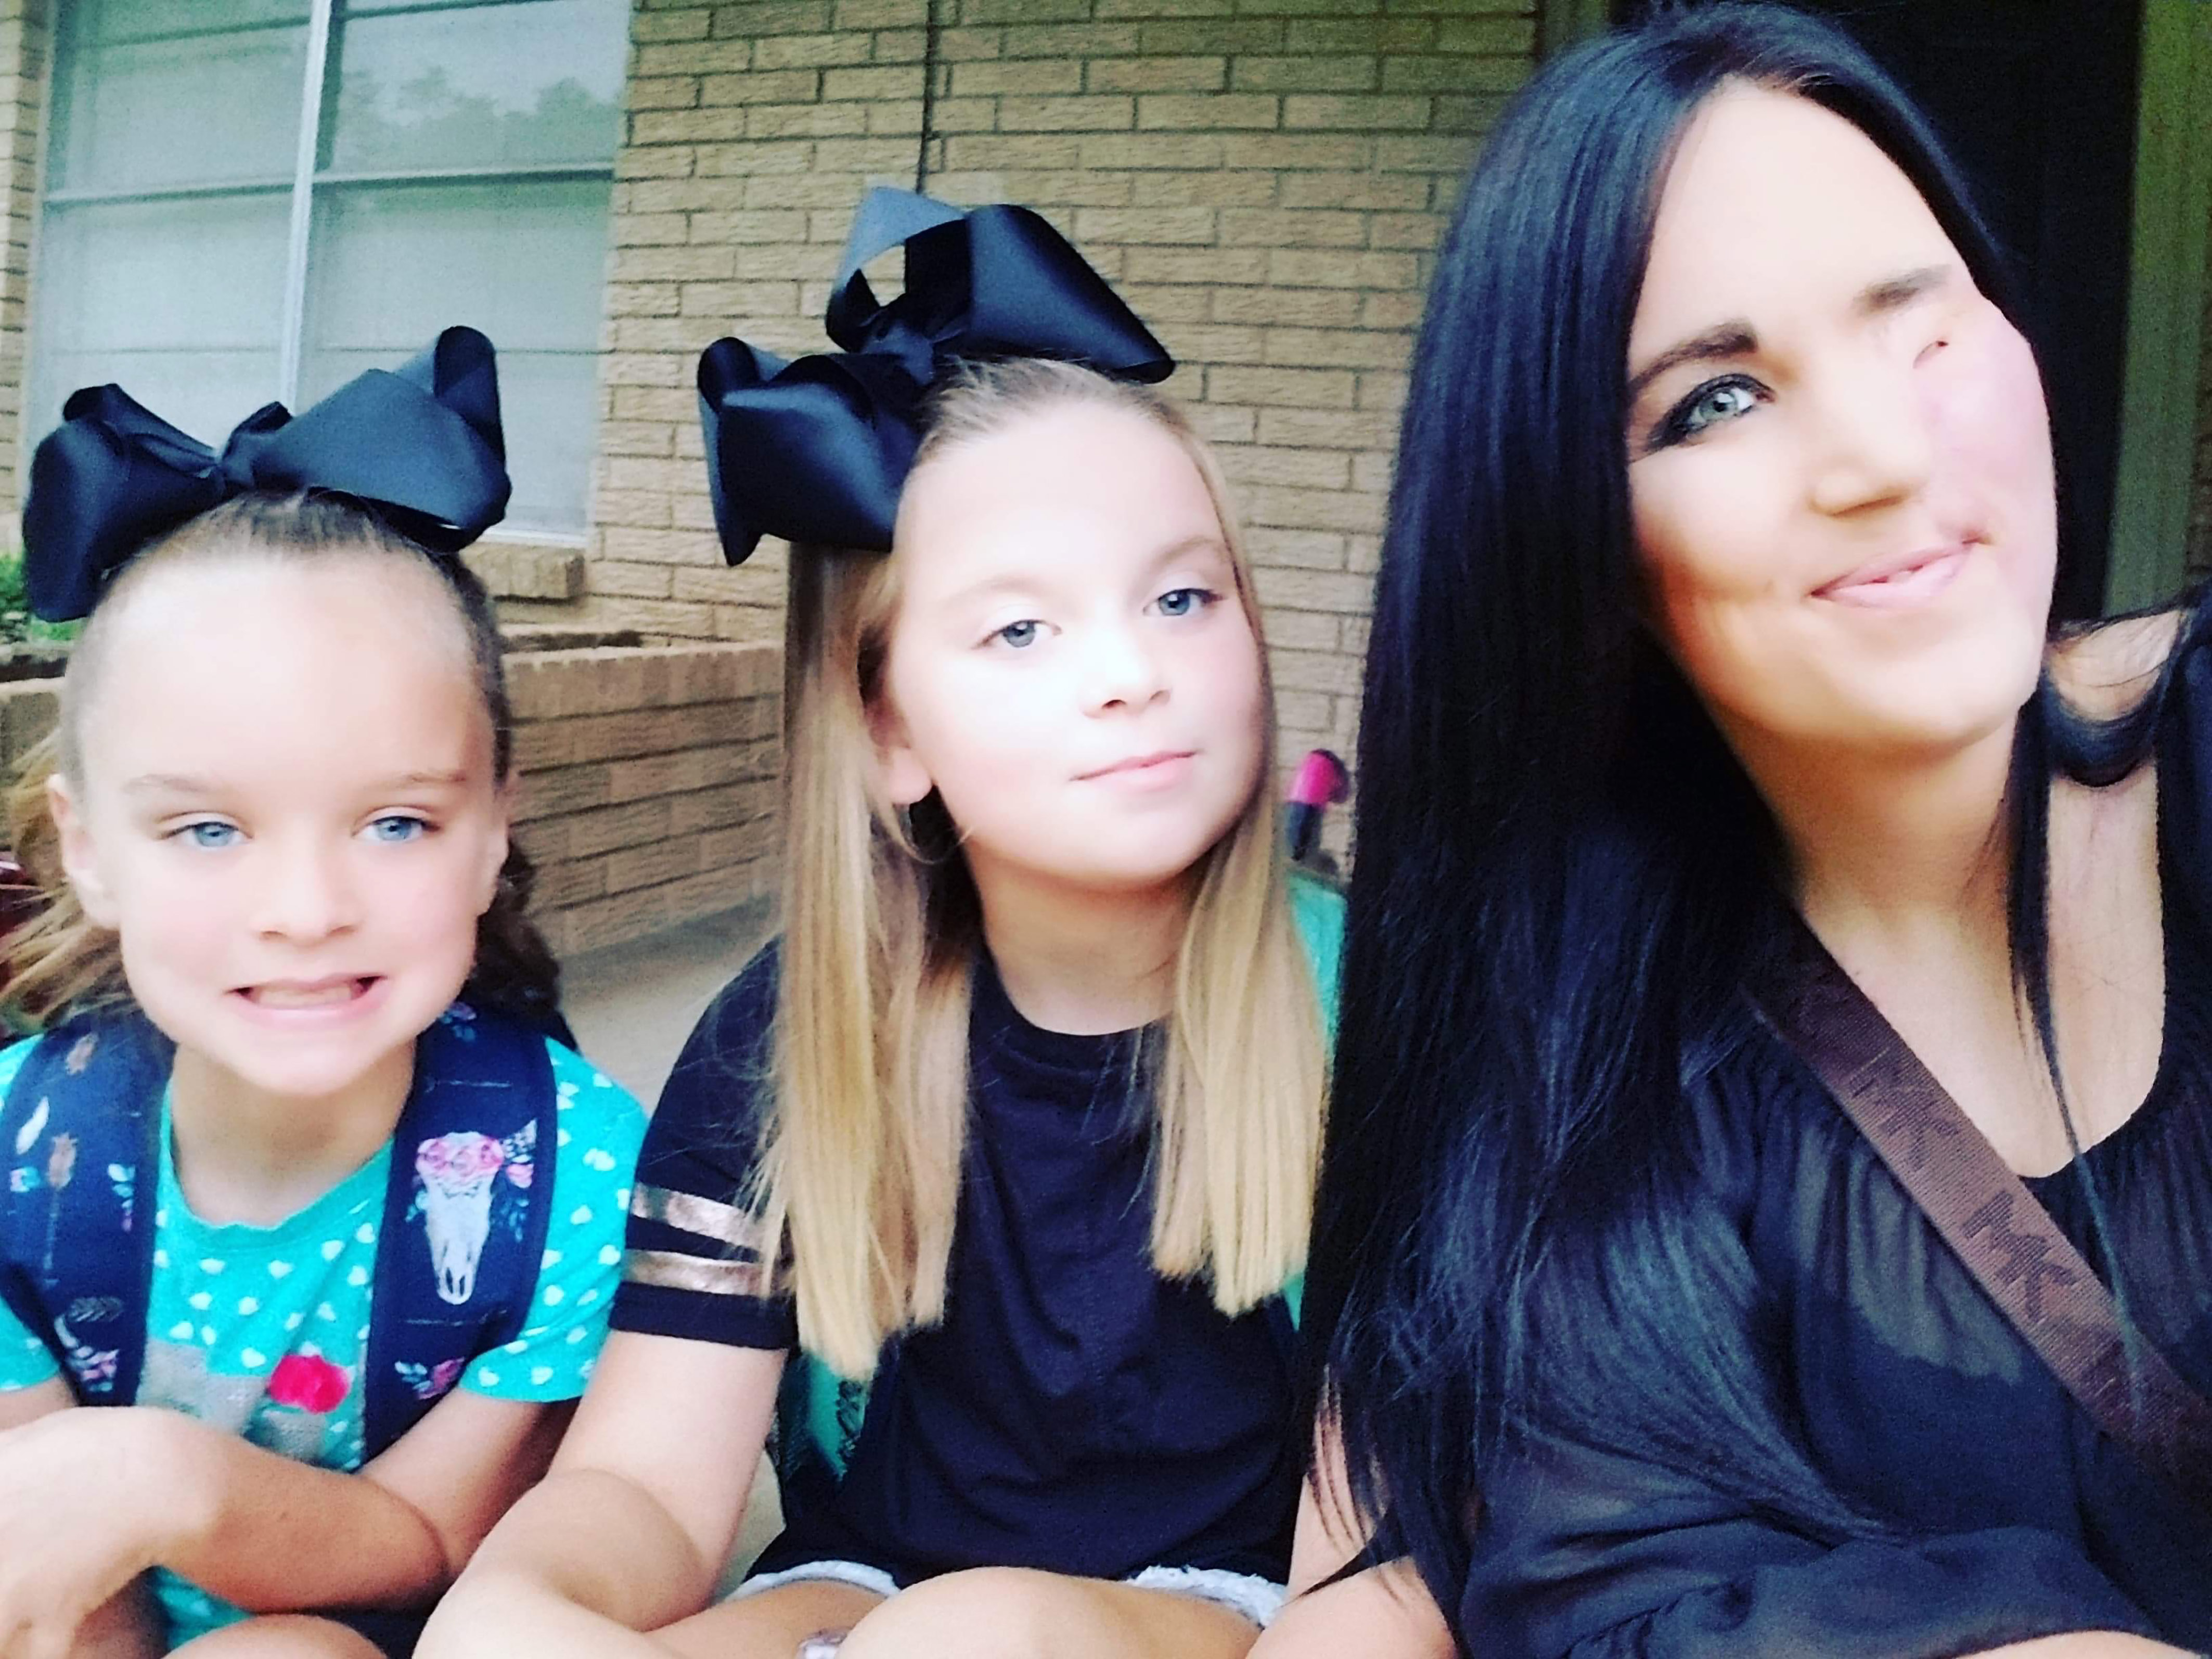 Brittney with daughters Makennah, 10 (centre) and Presley, 7 (left). Credit: Caters